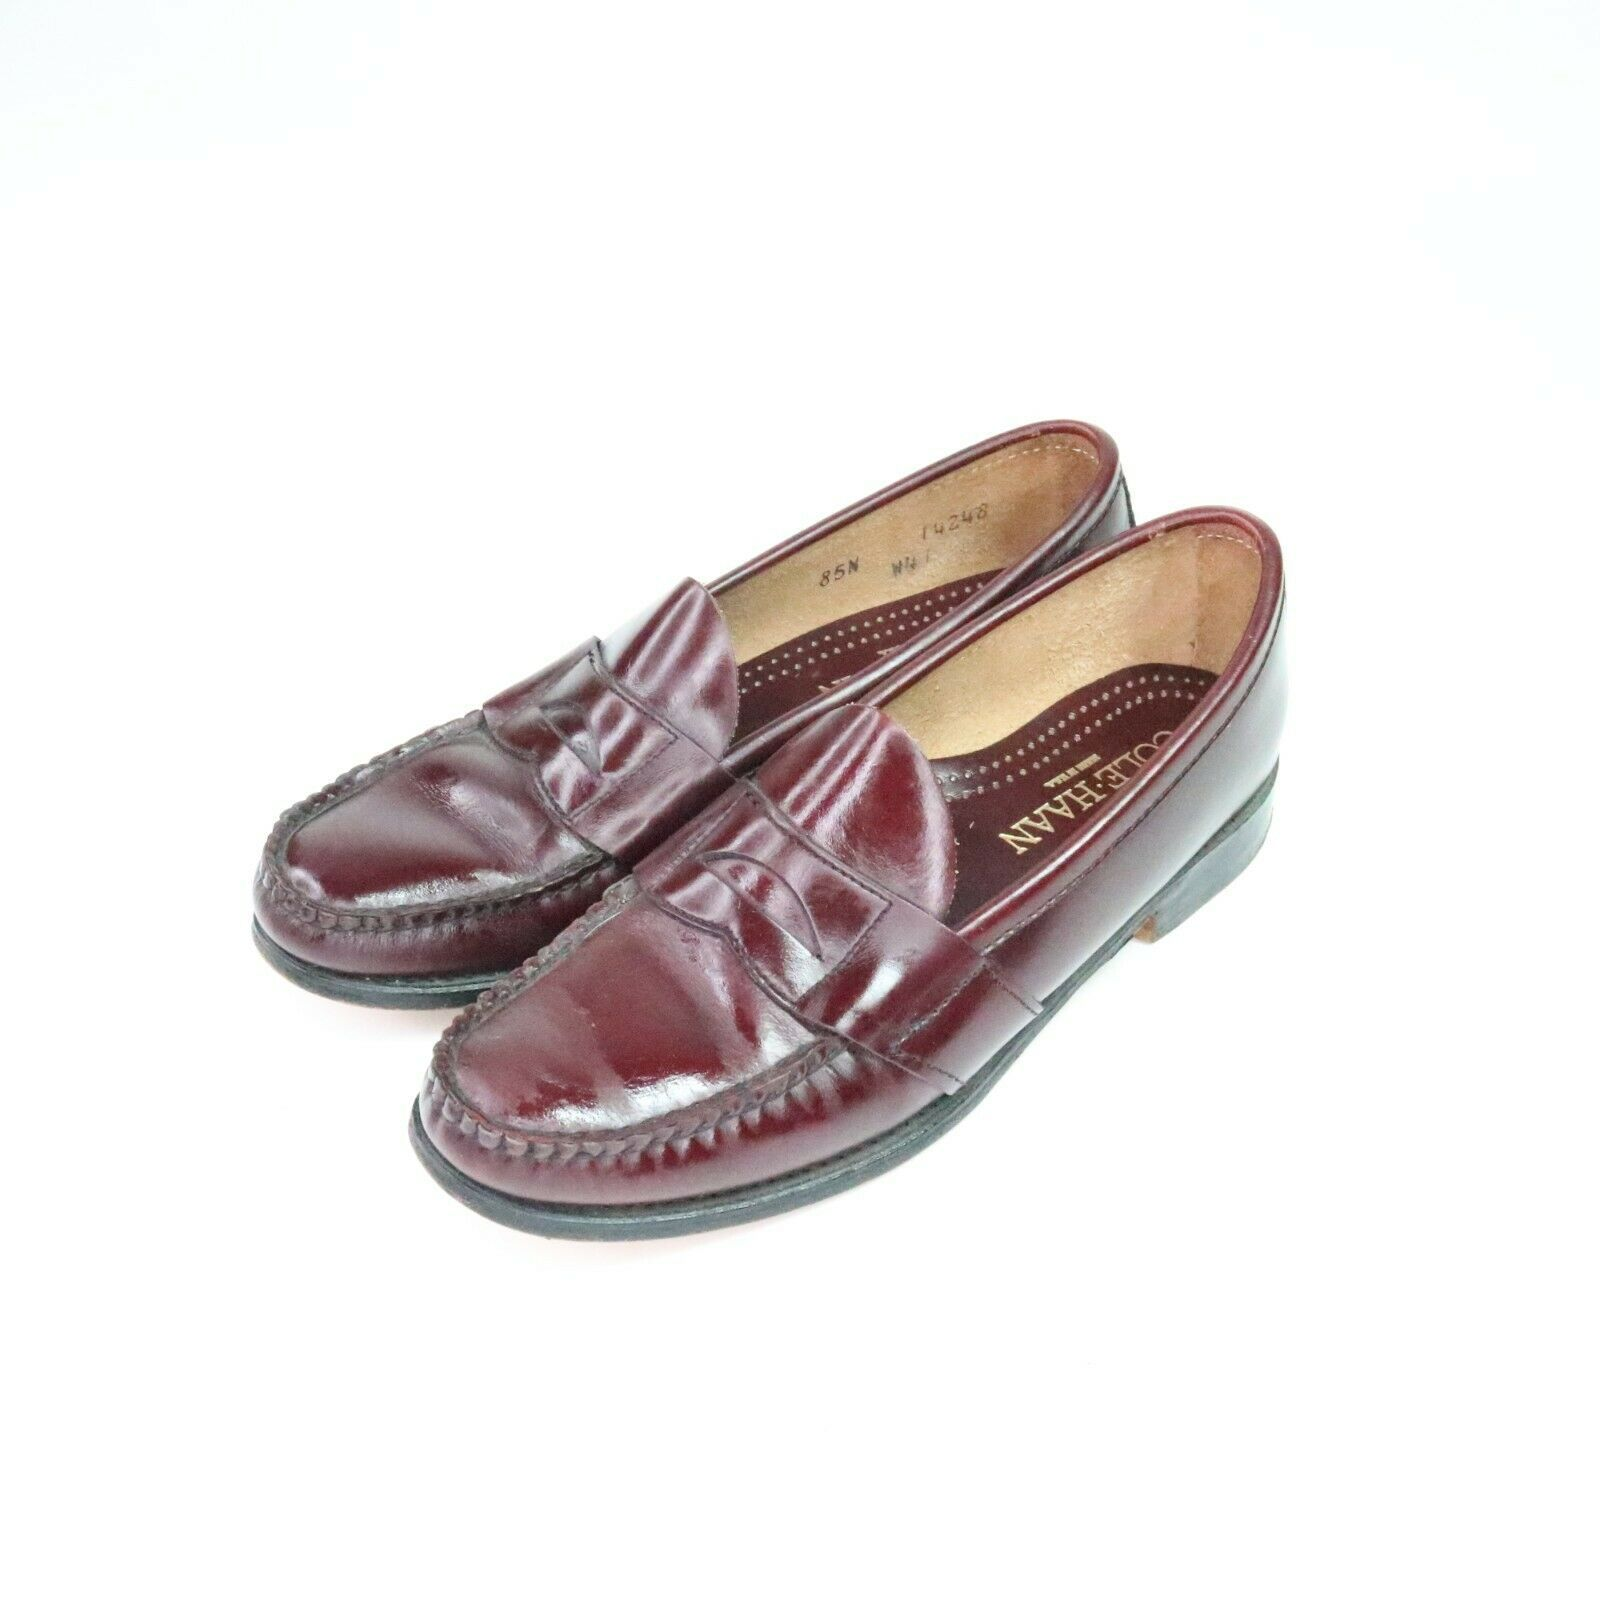 Primary image for Cole Haan Vintage Penny Loafers Dress Shoes Burgundy Made in USA Mens Size 8.5N